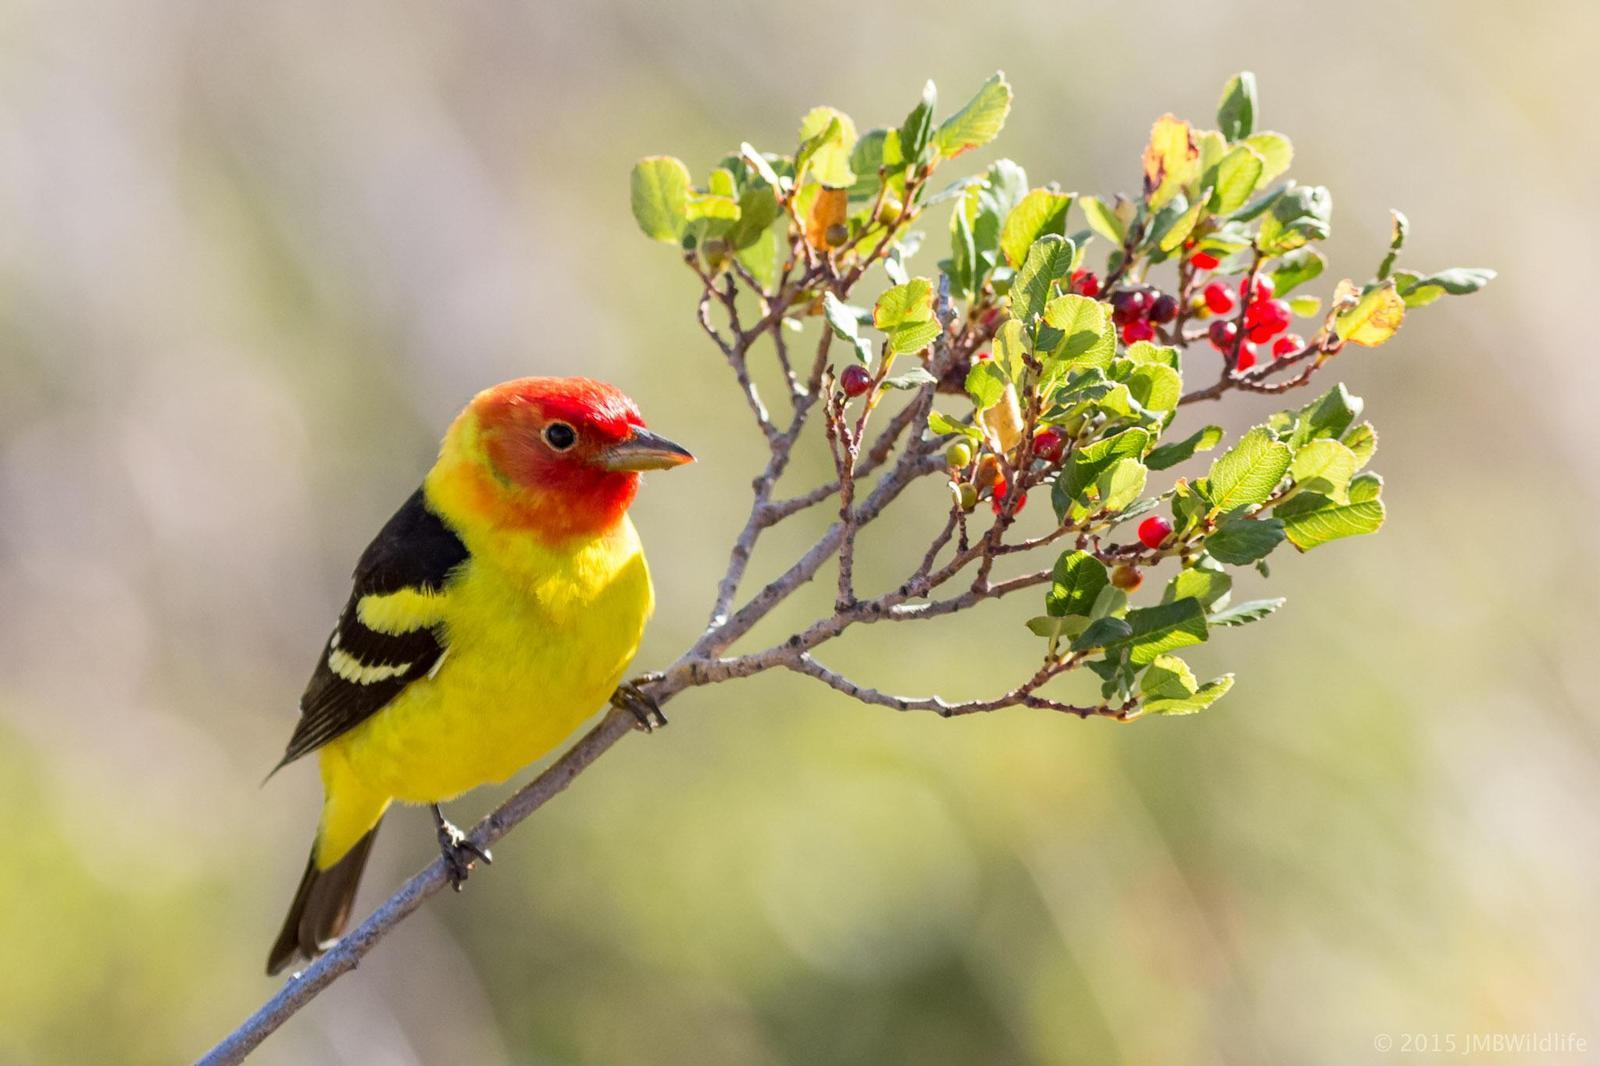 Western Tanager Photo by Jeff Bray